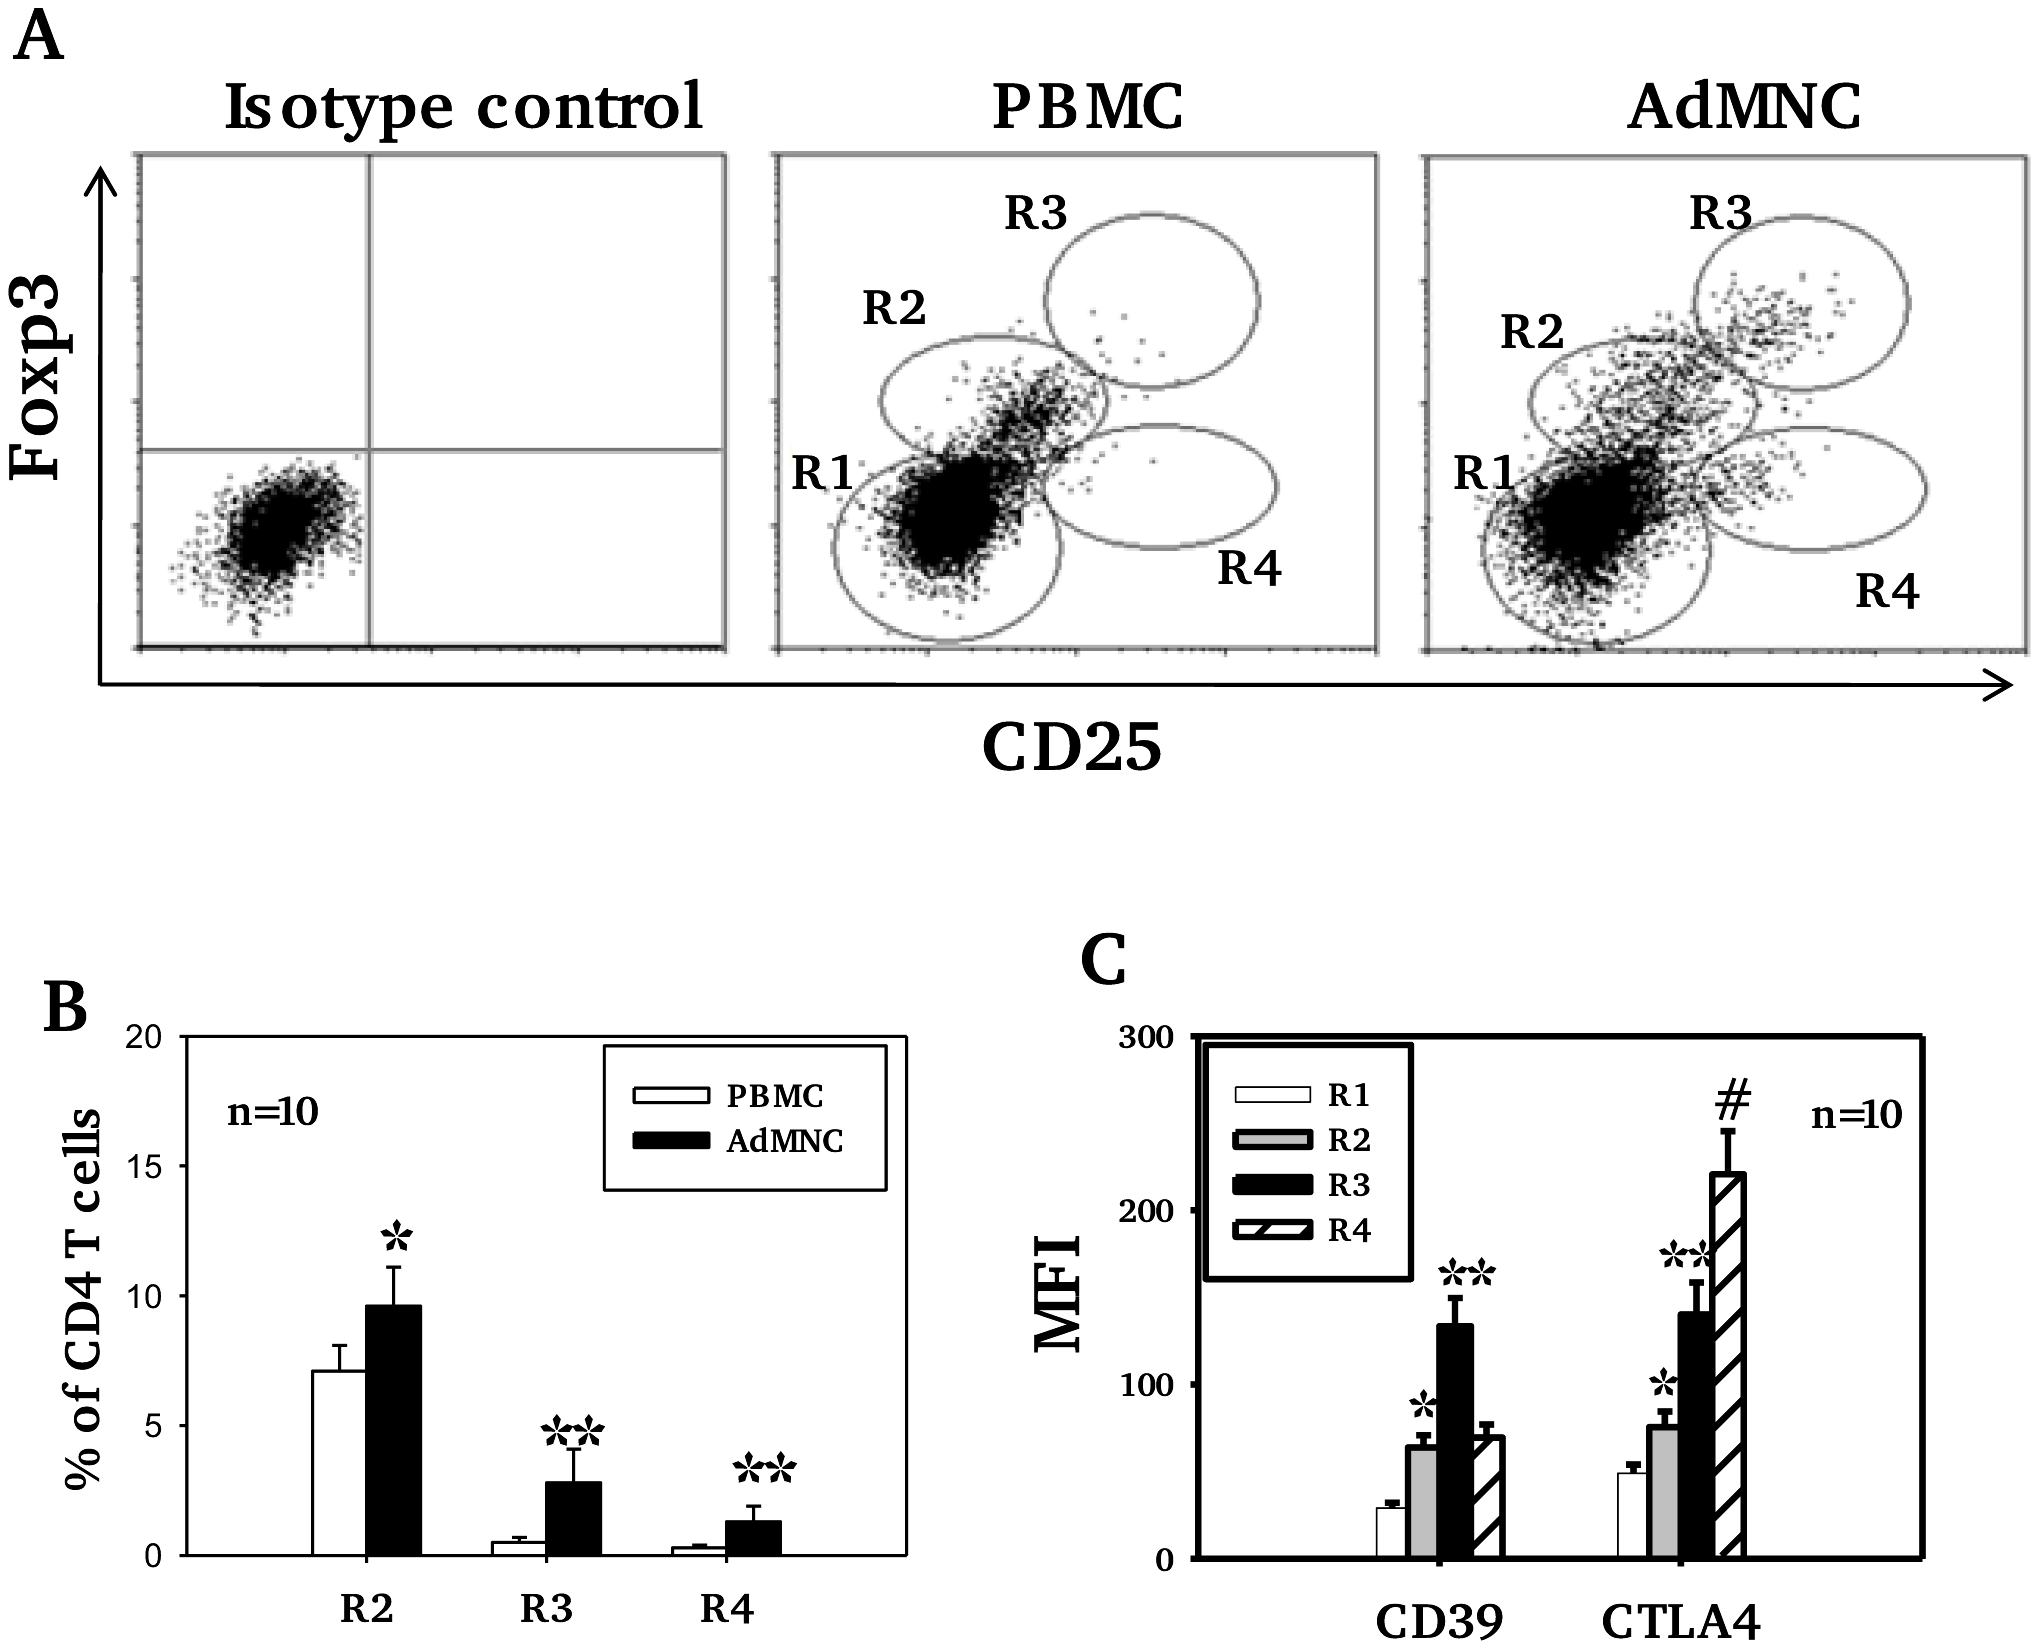 Expression of CD25, Foxp3, CD39 and CTLA4 by CD4 T cell subsets.